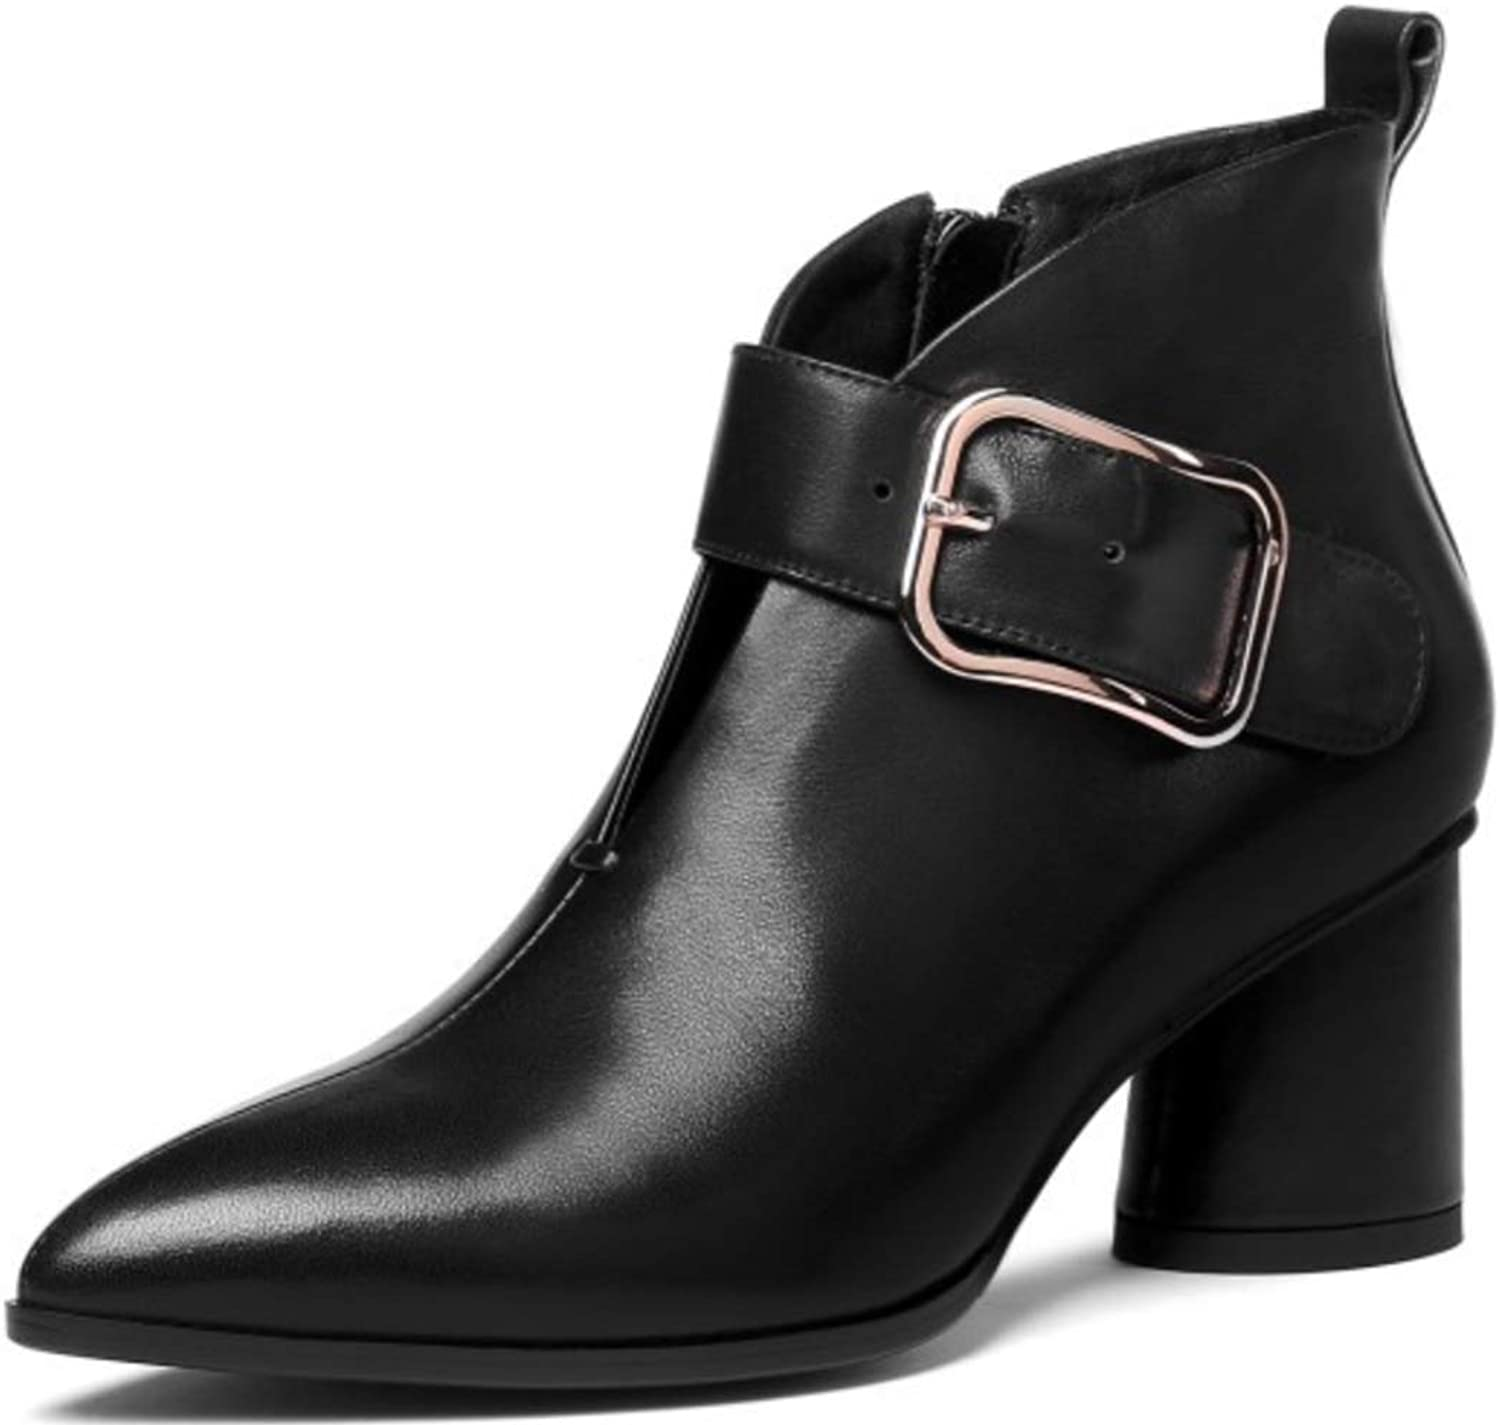 Women's Boots New Ol Pointed High-Heeled Chunky Heel Boots Metal Belt Buckle Trend Wild